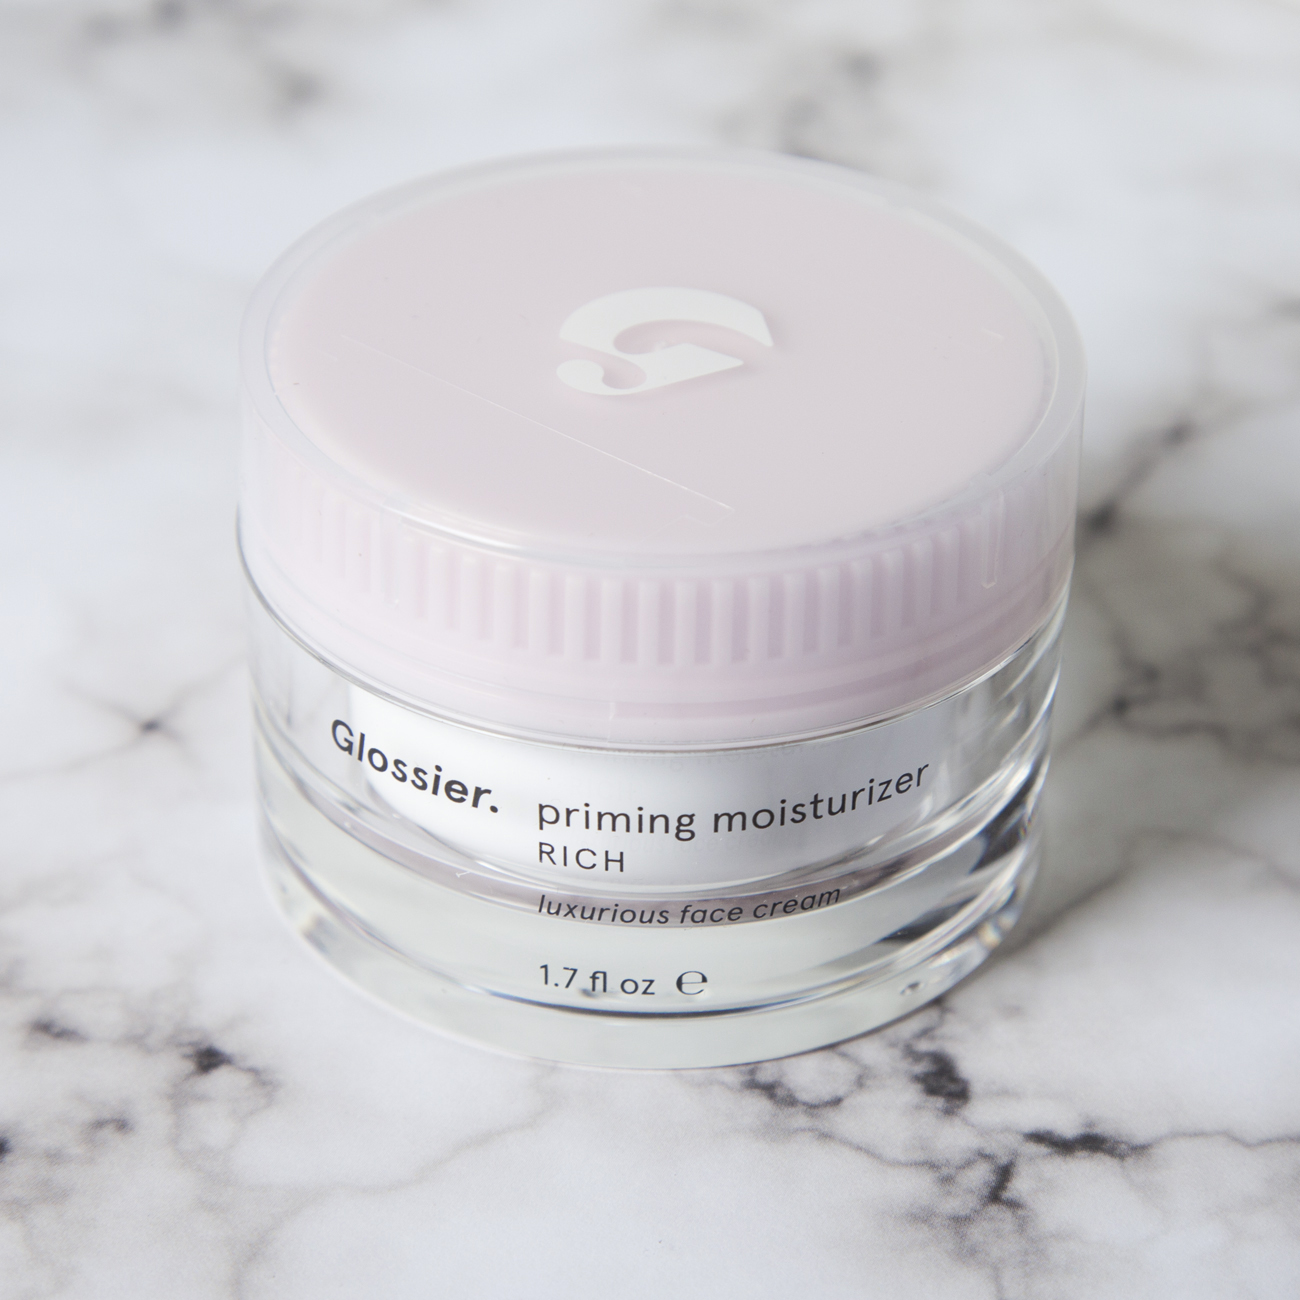 Glossier Priming Moisturizer Rich   This product has a bit of a cult following and now that I've tried it I can definitely see why. It very rich, which is fantastic for my mega dry skin, but doesn't feel heavy at all.My makeup goes on over this so much more smoothly than it did with the   Clarins Multi-Active Day Cream  which would sometimes bunch up and crumble if I applied too much. I'm not usually a repeat offender with many beauty products, if you can't tell I love to try out different things, but this might be my new go-to daytime moisturizer because of how well it is working for me thus far. I used a 20% off welcome code on this and got it for $28 but it goes for $35 which is a lot cheaper than a lot of the other moisturizers I've tried out so it's a win-win.